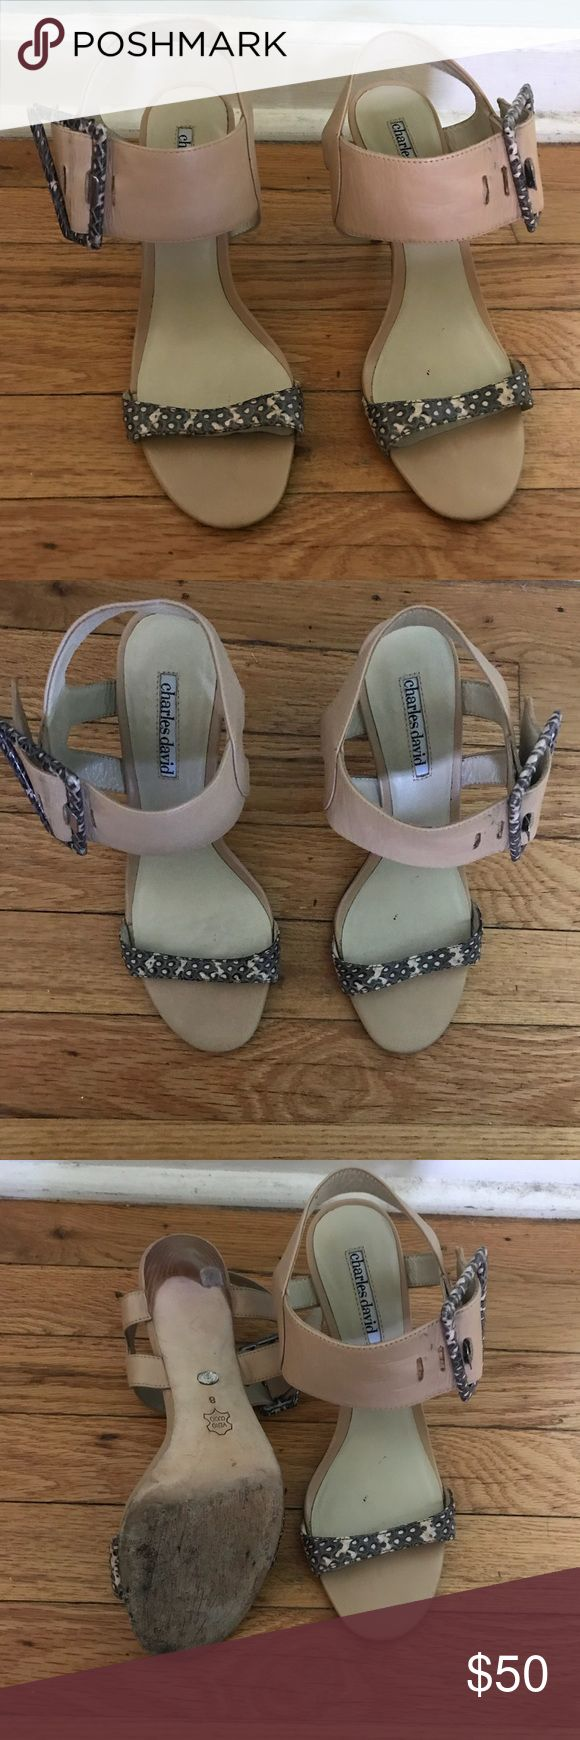 Charles David Snake Print Heels Charles David Snake Print Heels. Great for dressing up or down and in excellent used condition! Charles David Shoes Heels